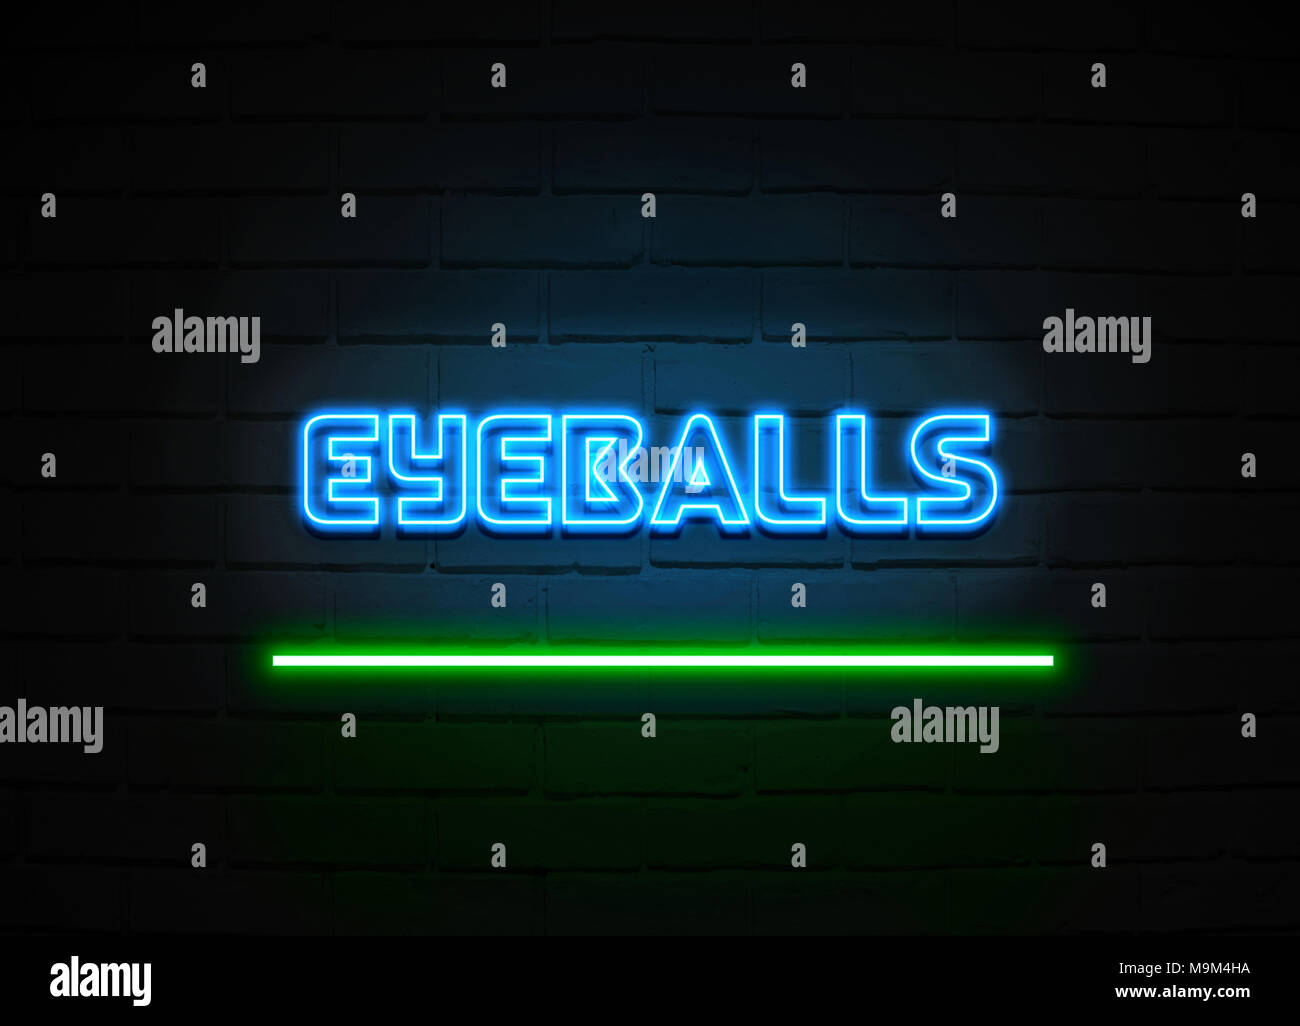 Eyeballs neon sign - Glowing Neon Sign on brickwall wall - 3D rendered royalty free stock illustration. - Stock Image